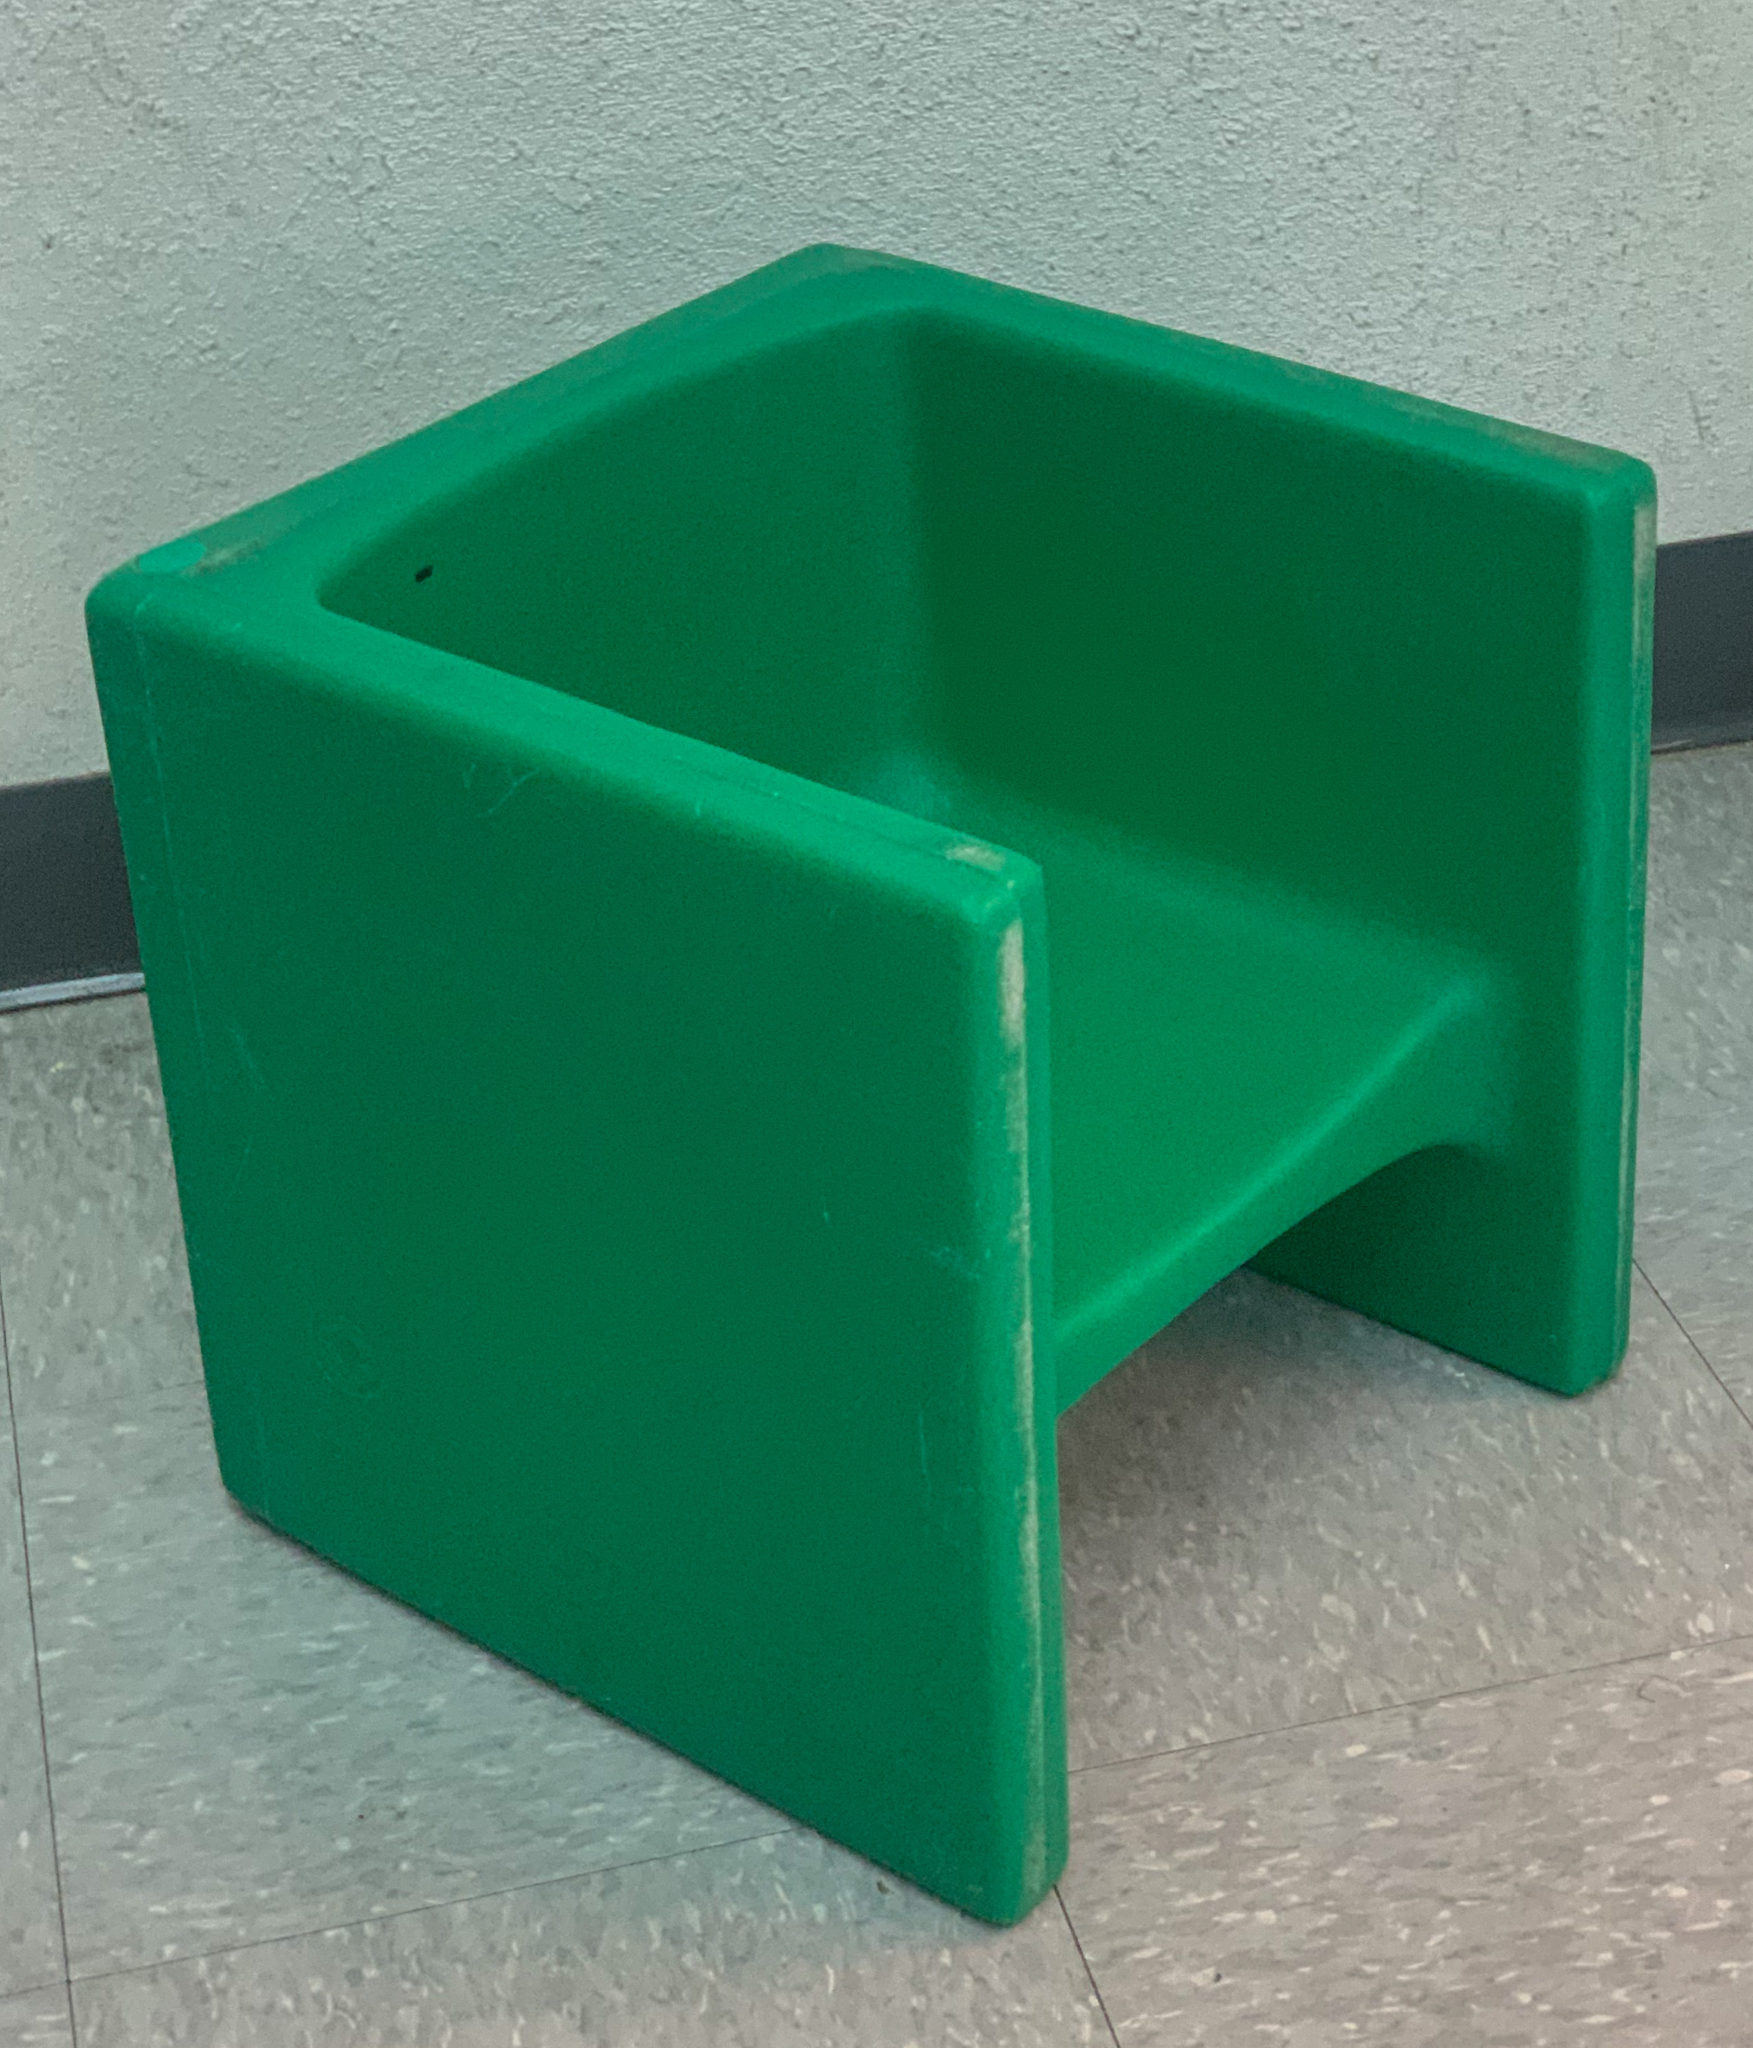 This is a photo of the cube seats I use in my classroom.